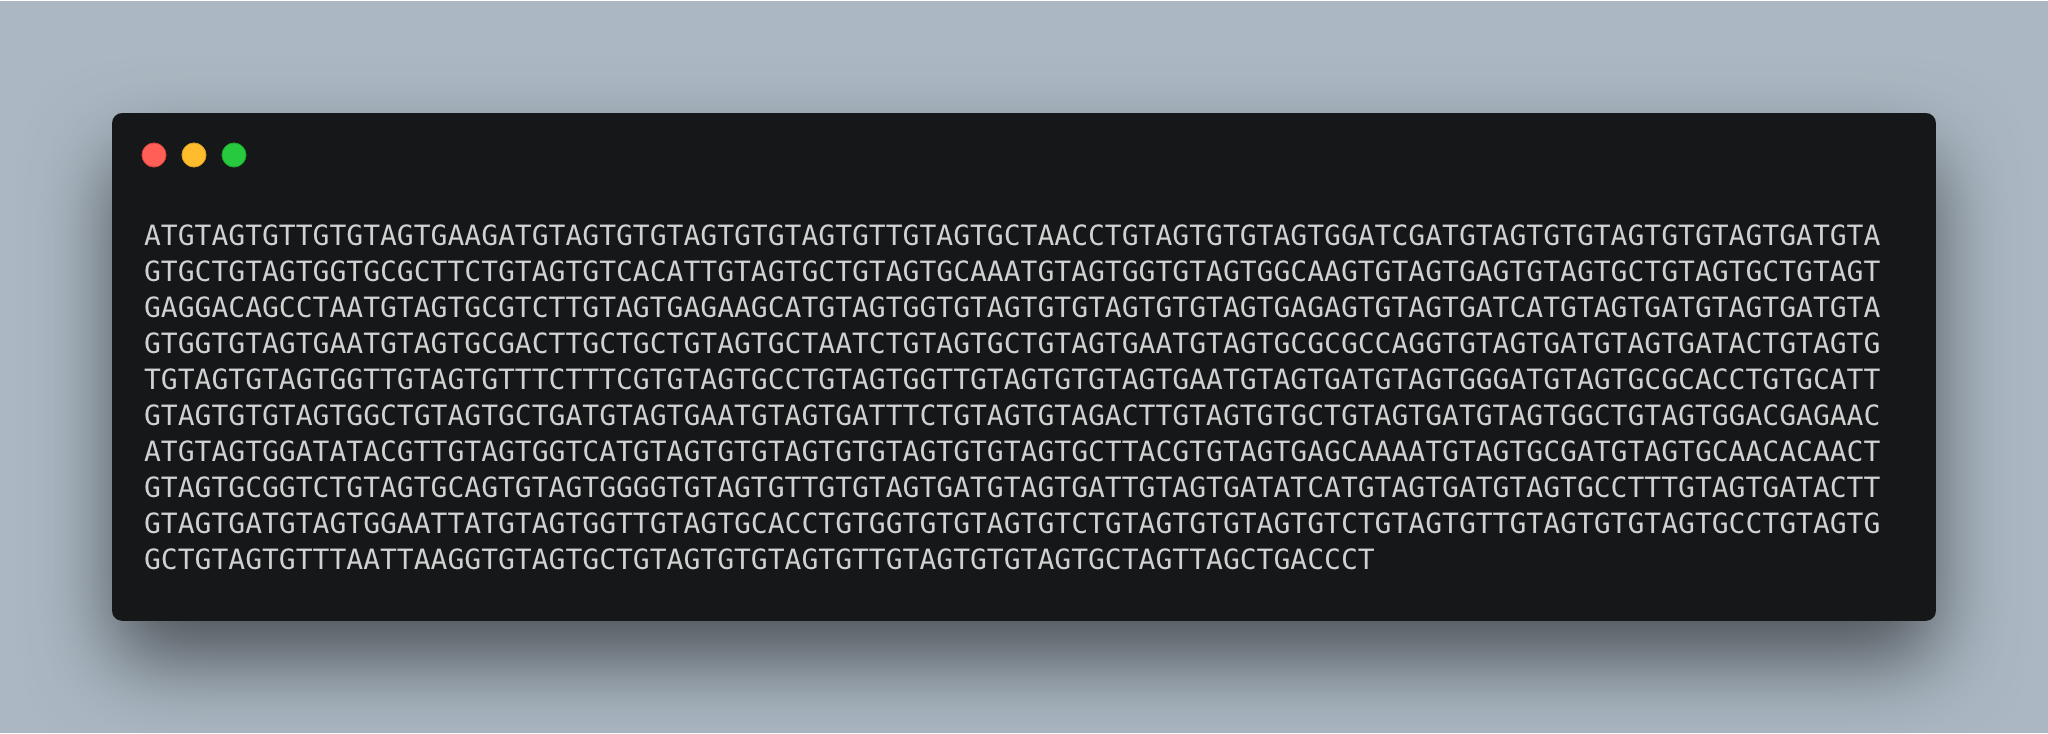 A fictional 1000 nucleic acid long DNA sequence of a strong cancer-fighting cell.